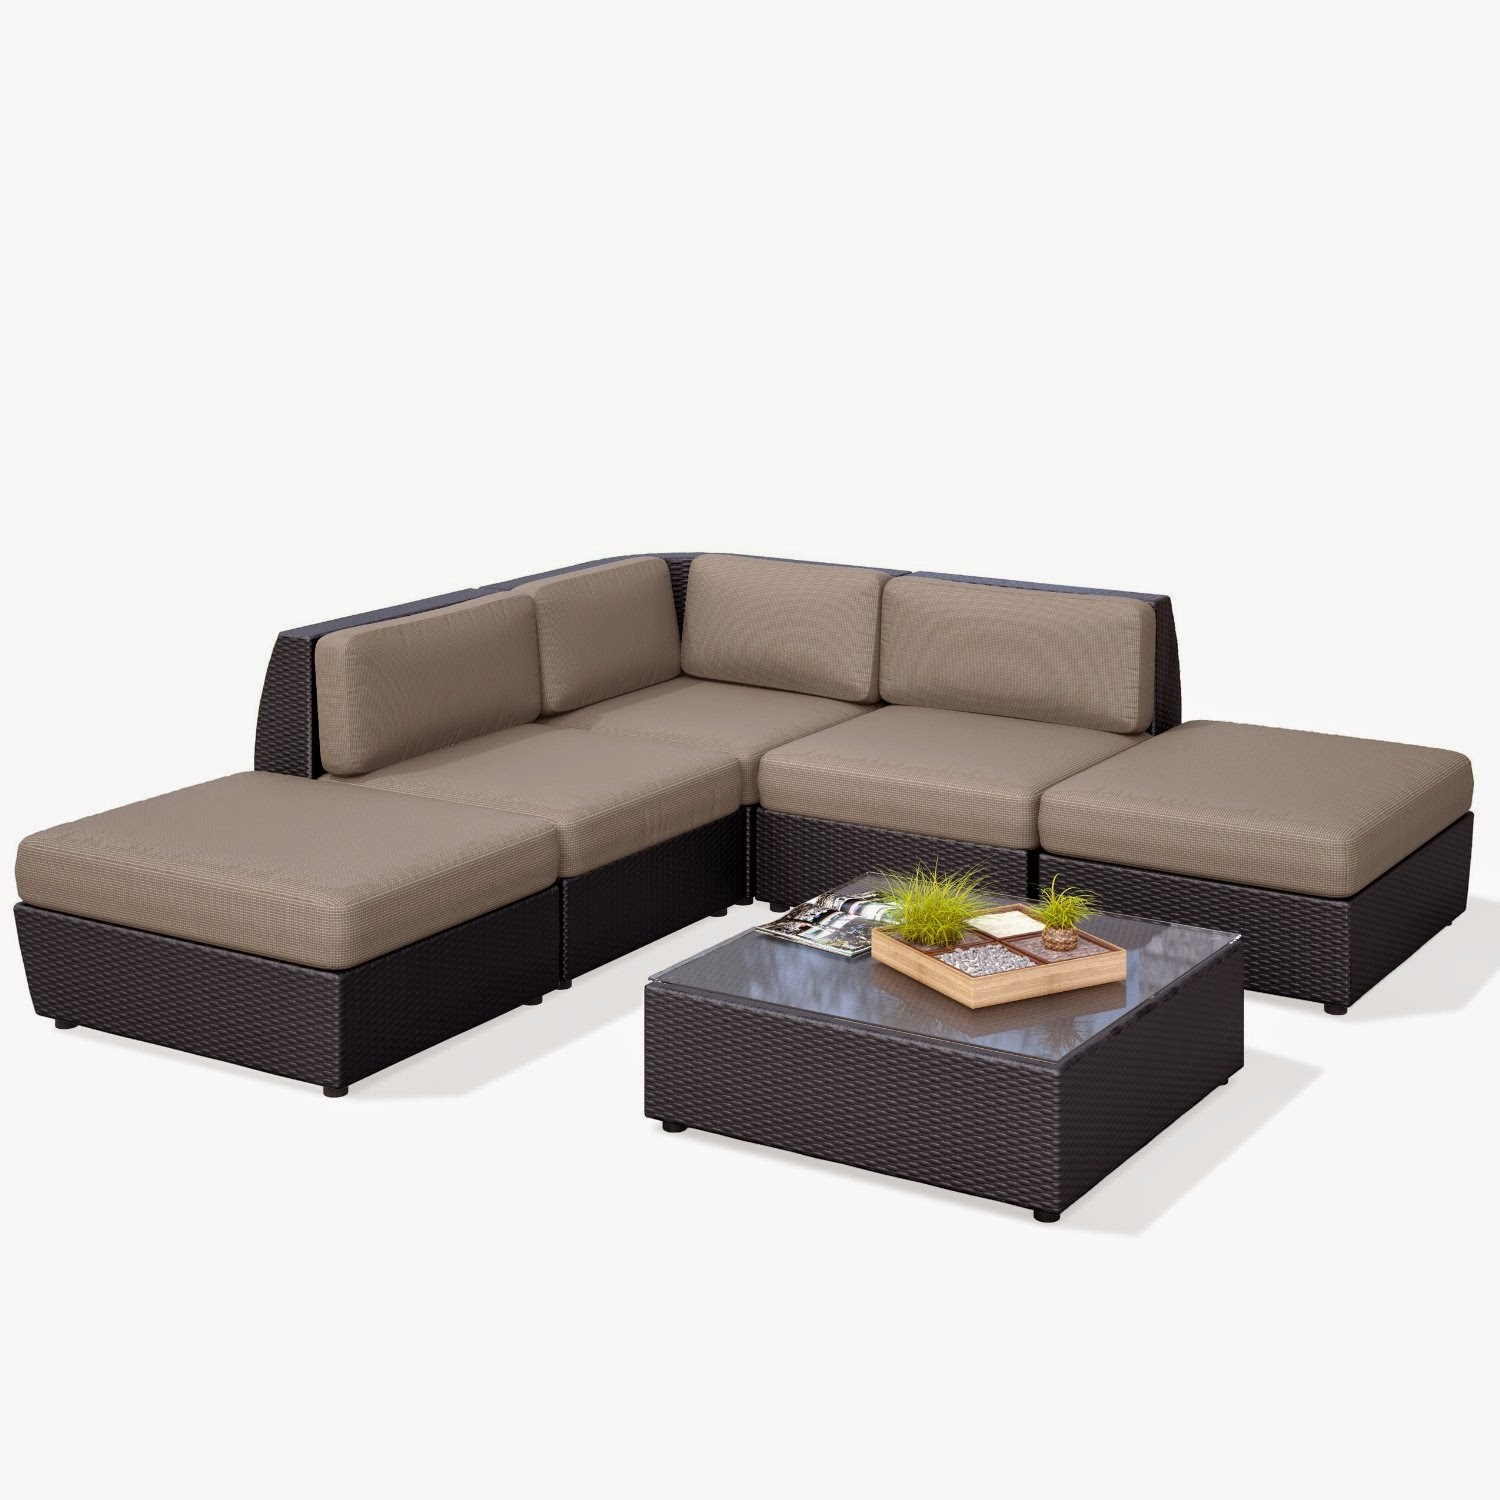 curved sofa couch for sale large curved corner sofas On wide couches for sale